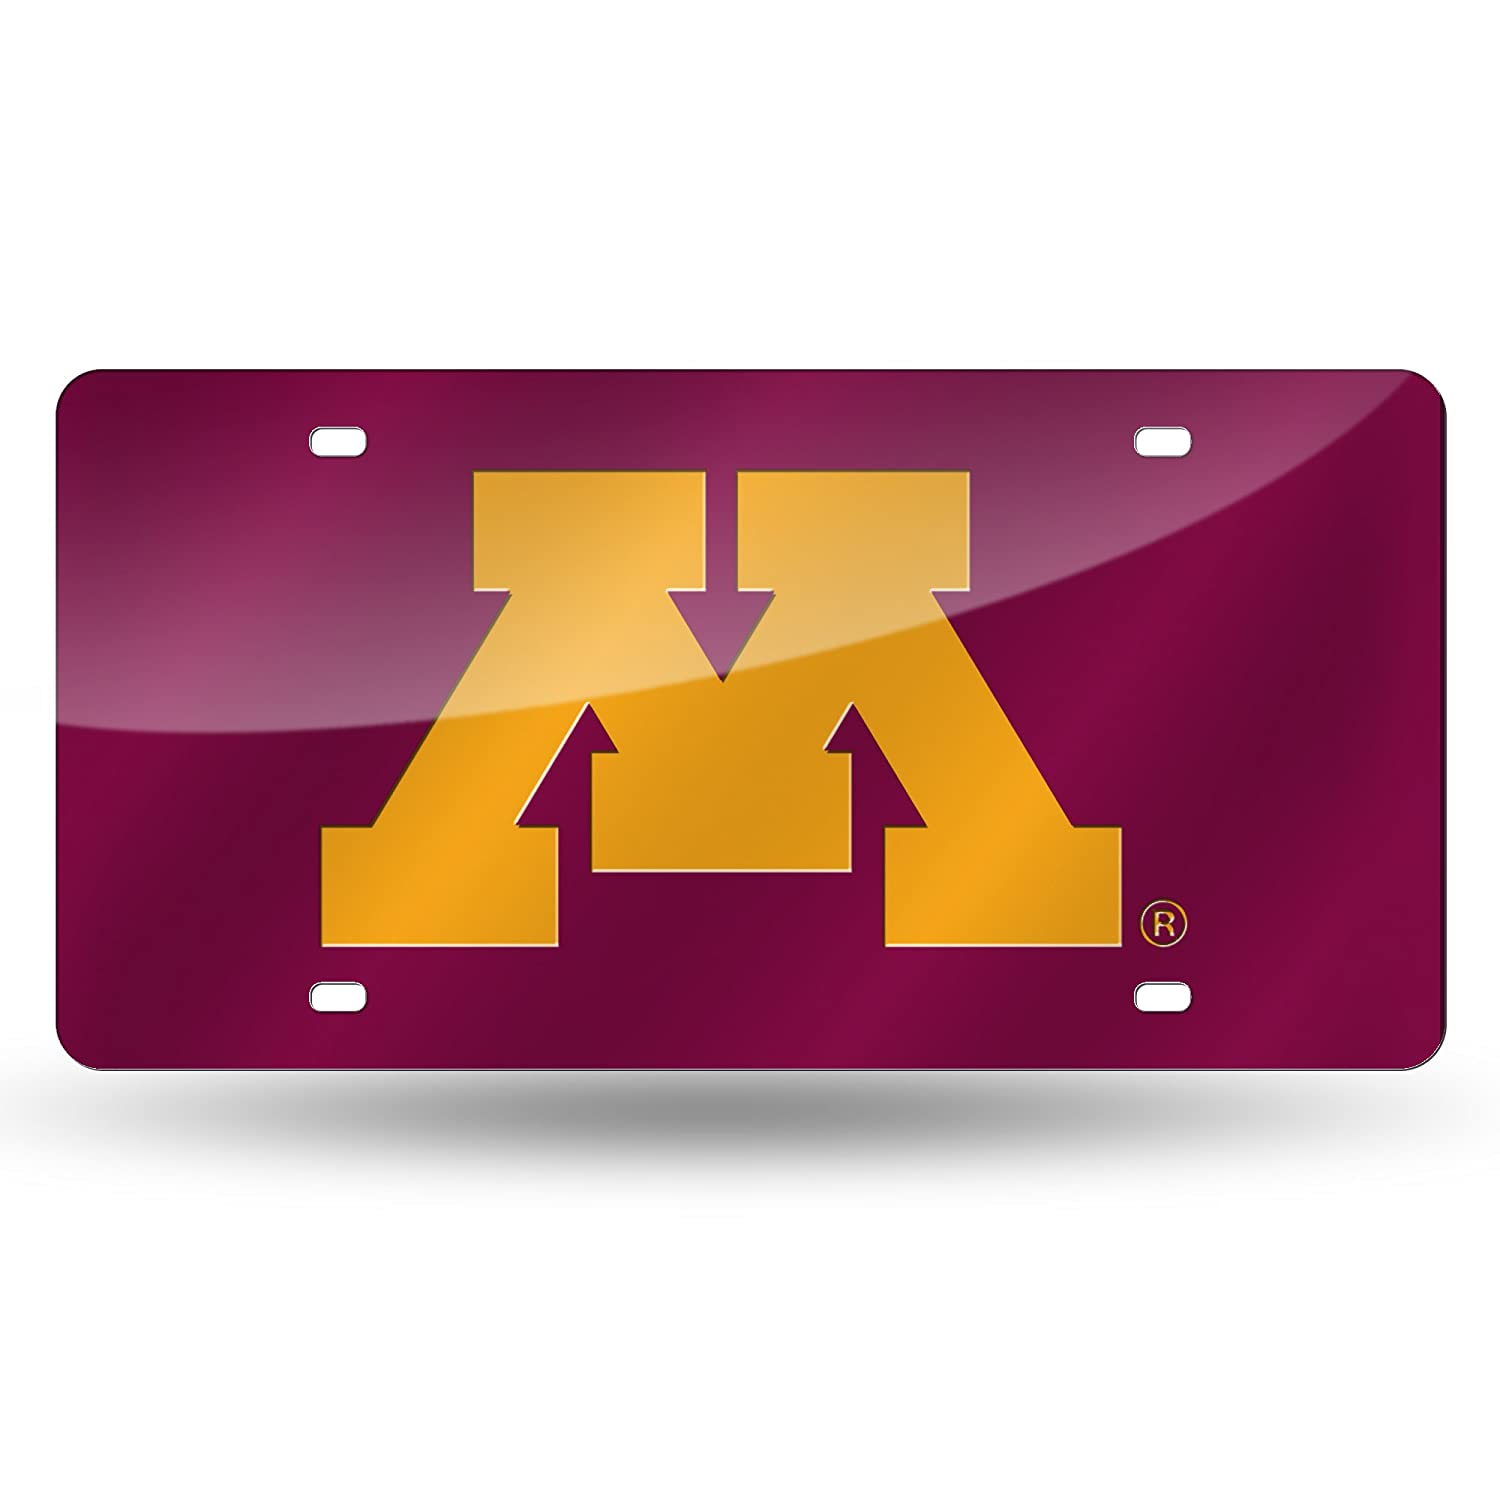 NCAA Minnesota Golden Gophers Laser Inlaid Metal License Plate Tag